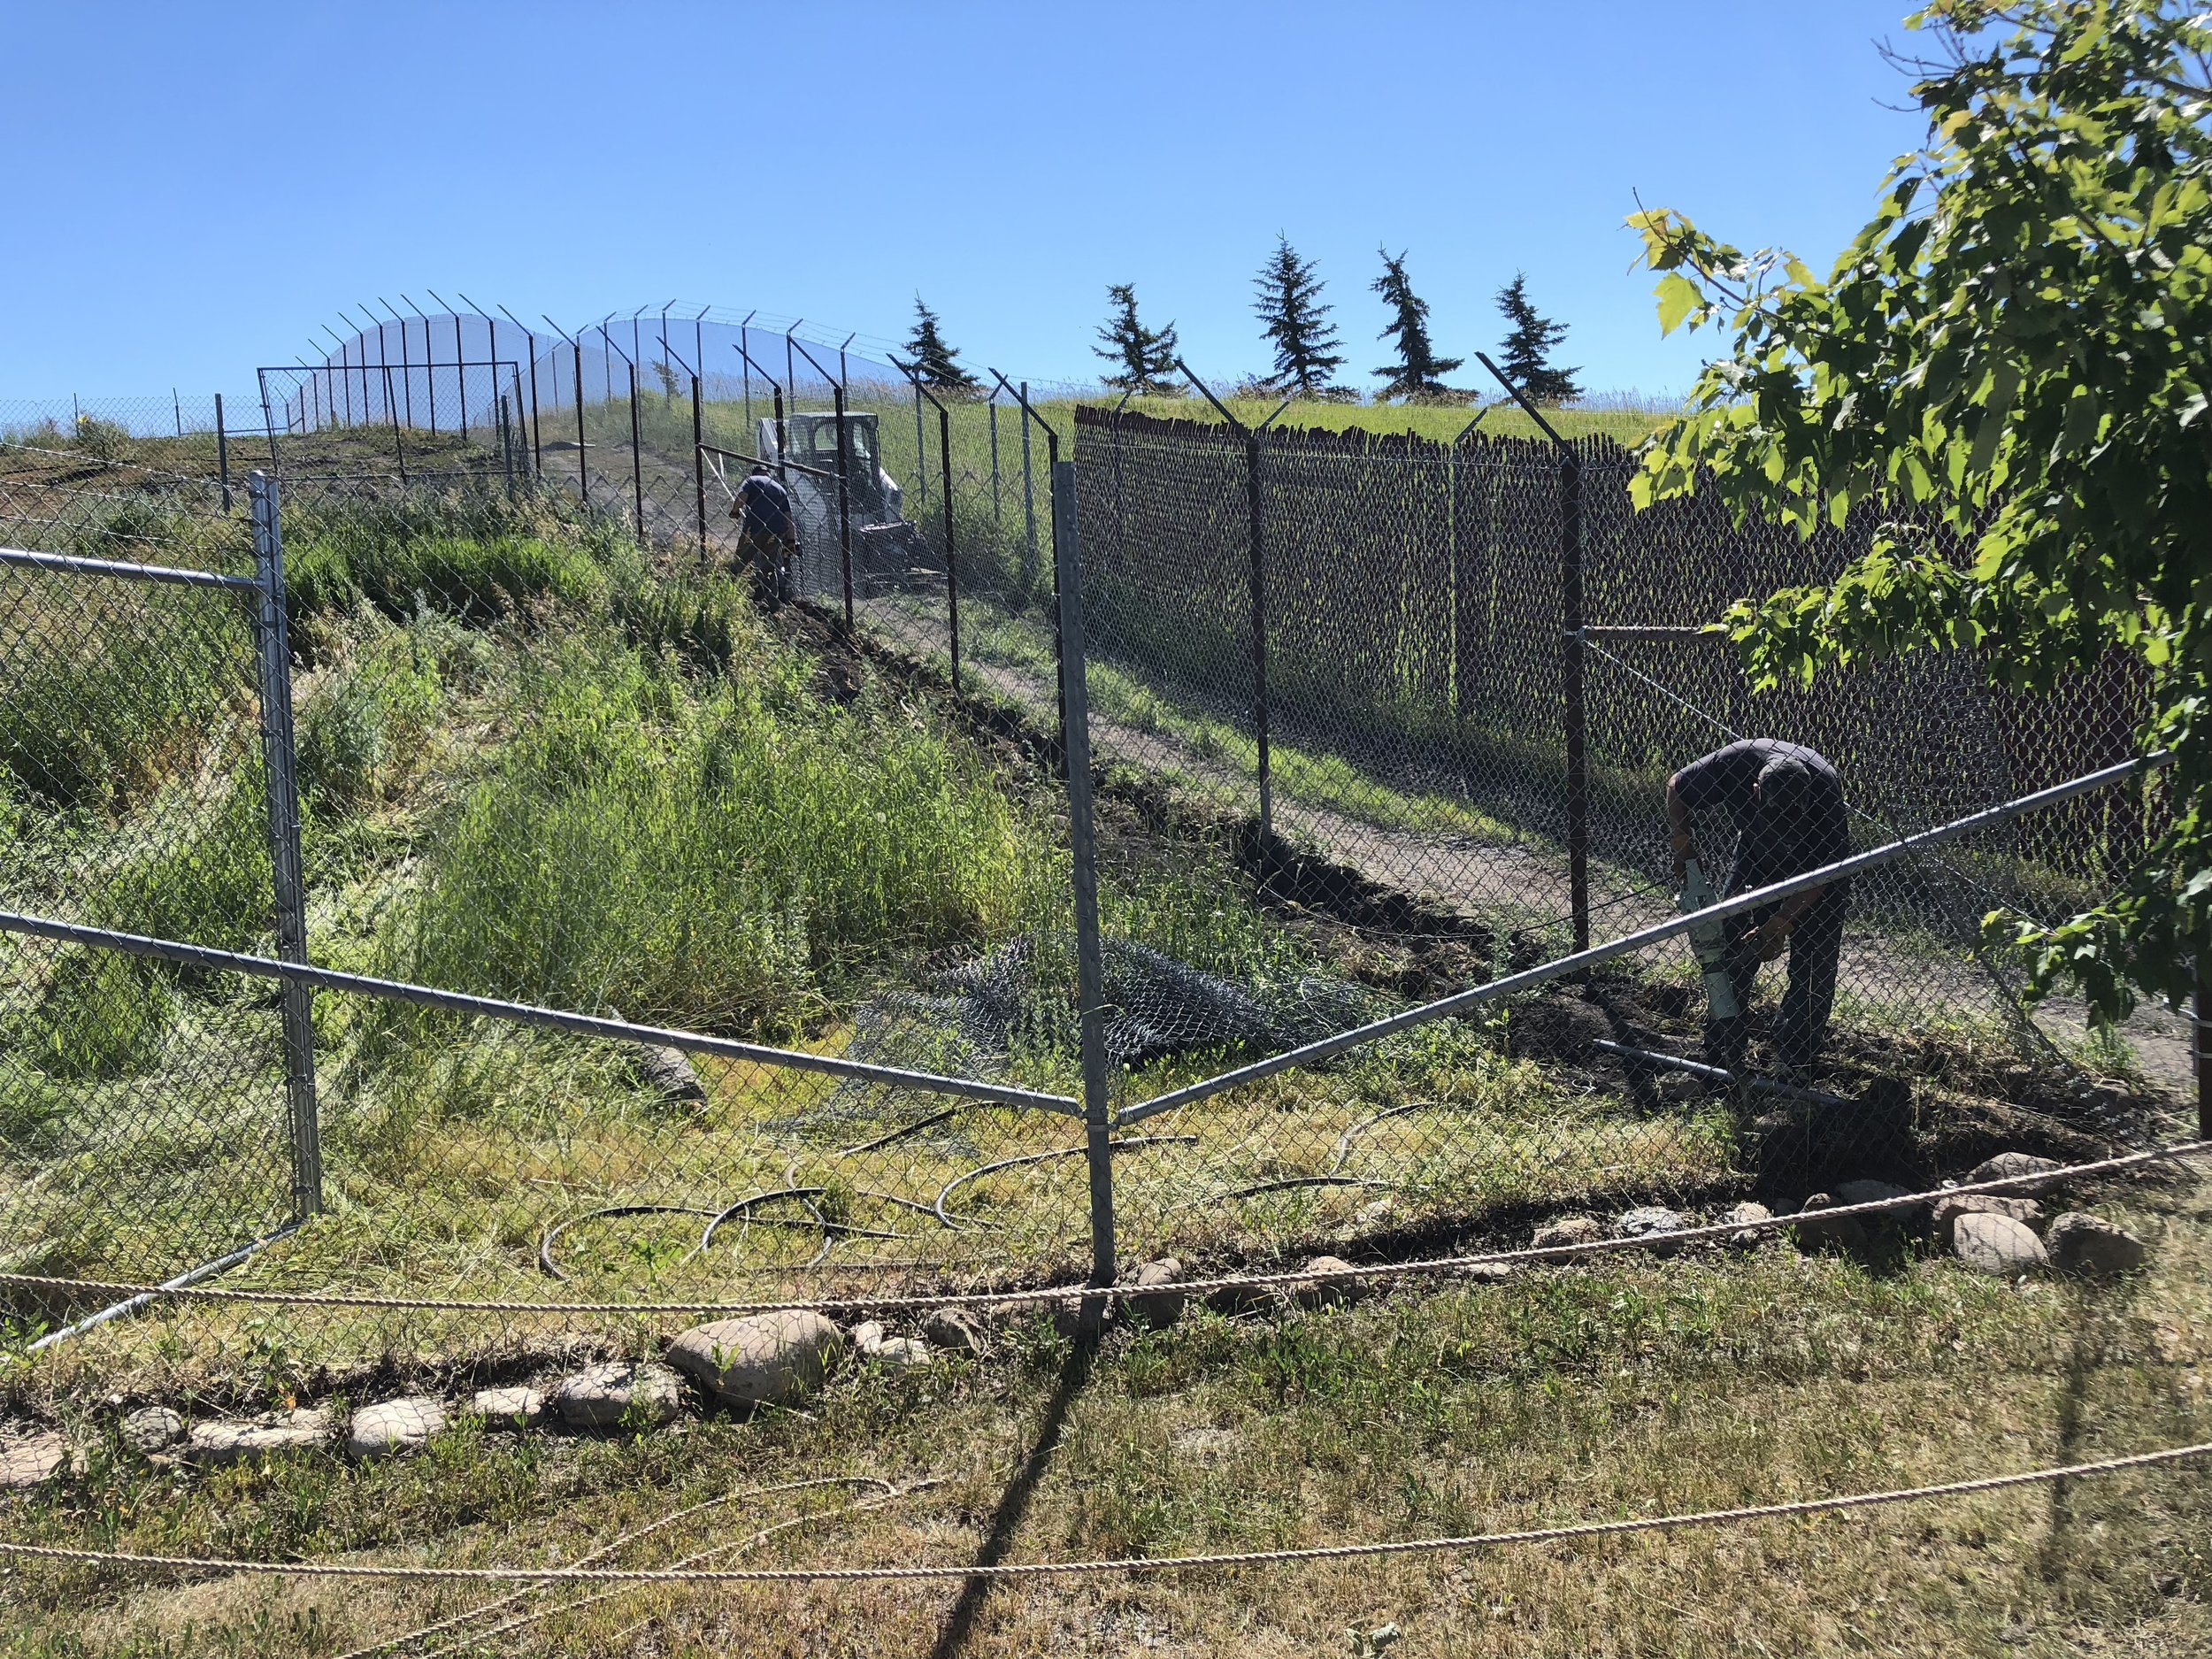 Wolves are excellent diggers, so our staff is laying fencing underground and tying it to the perimeter fence to stop them from digging out.